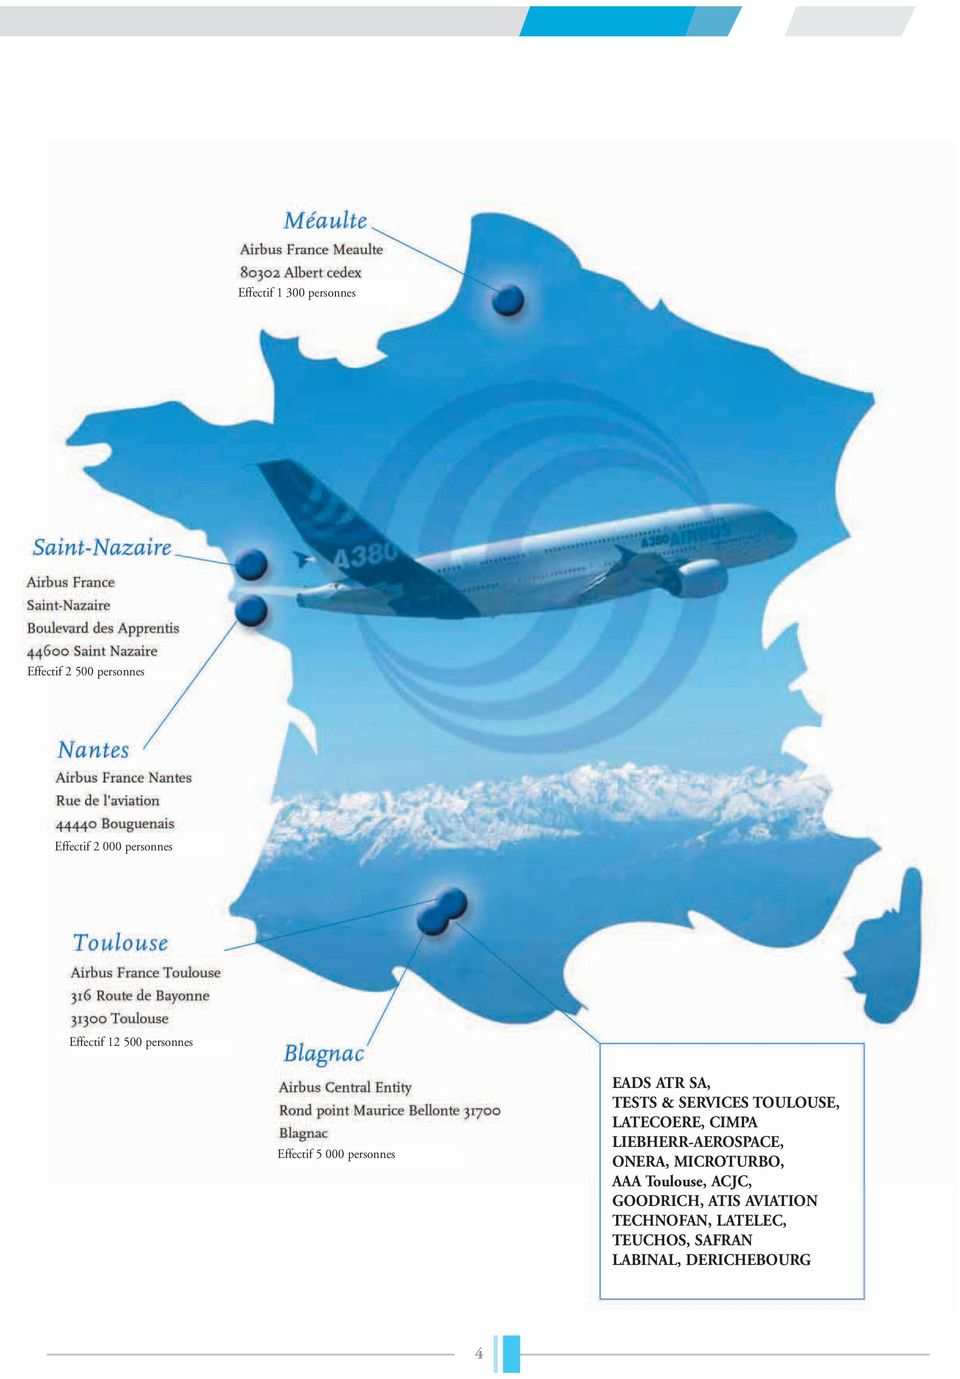 TOULOUSE, LATECOERE, CIMPA LIEBHERR-AEROSPACE, ONERA, MICROTURBO, AAA Toulouse,